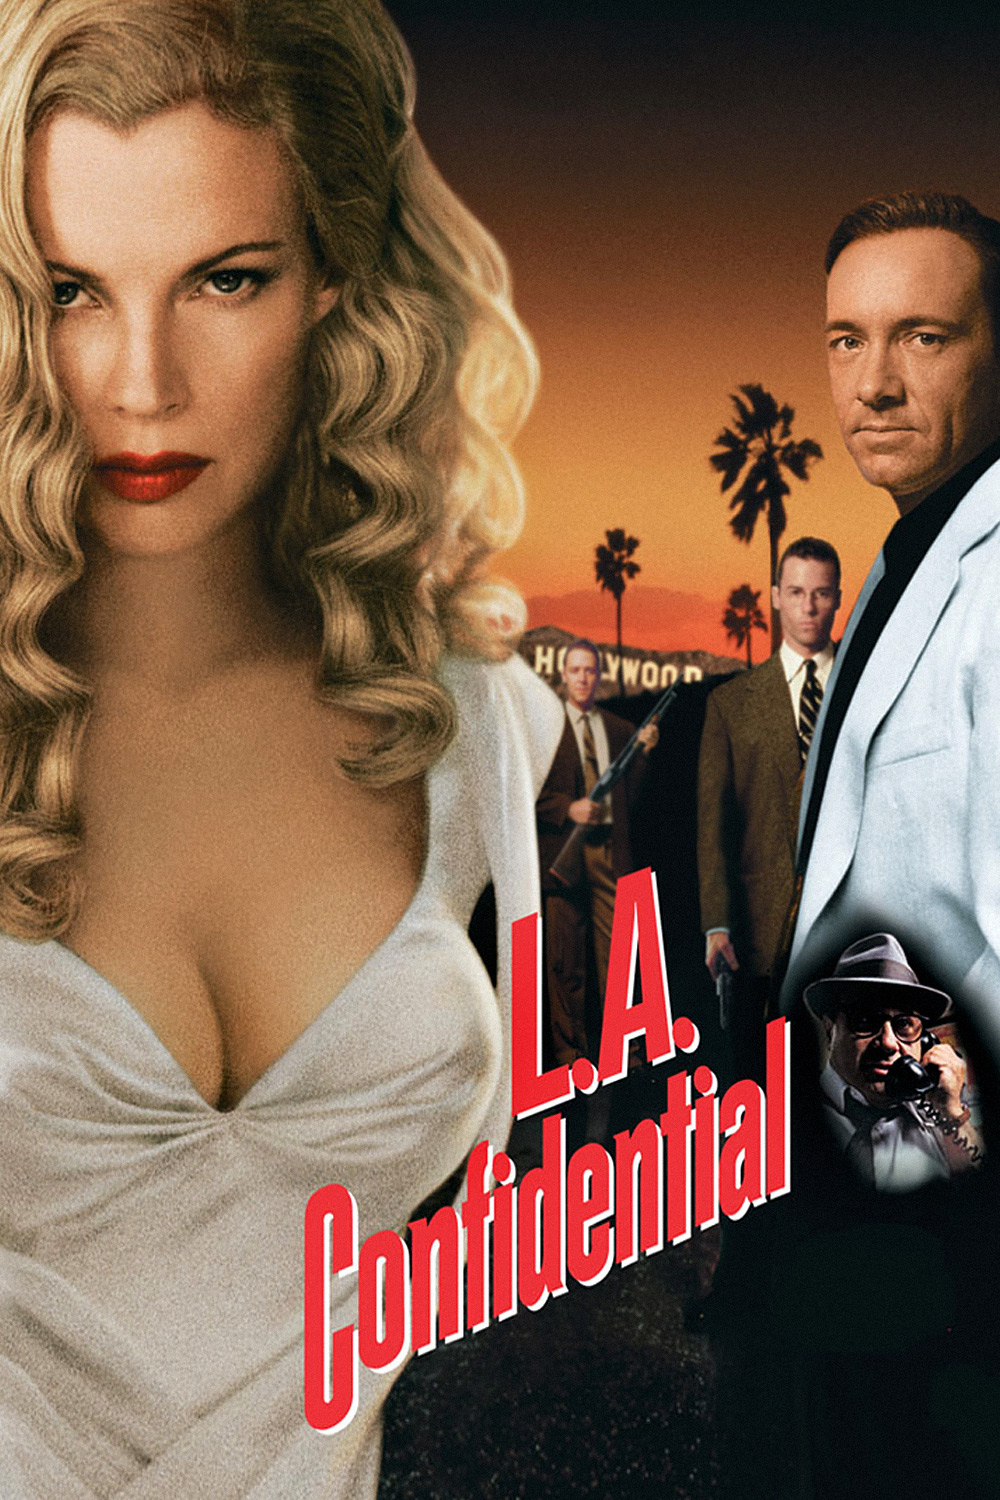 L.A. Confidential promotional image